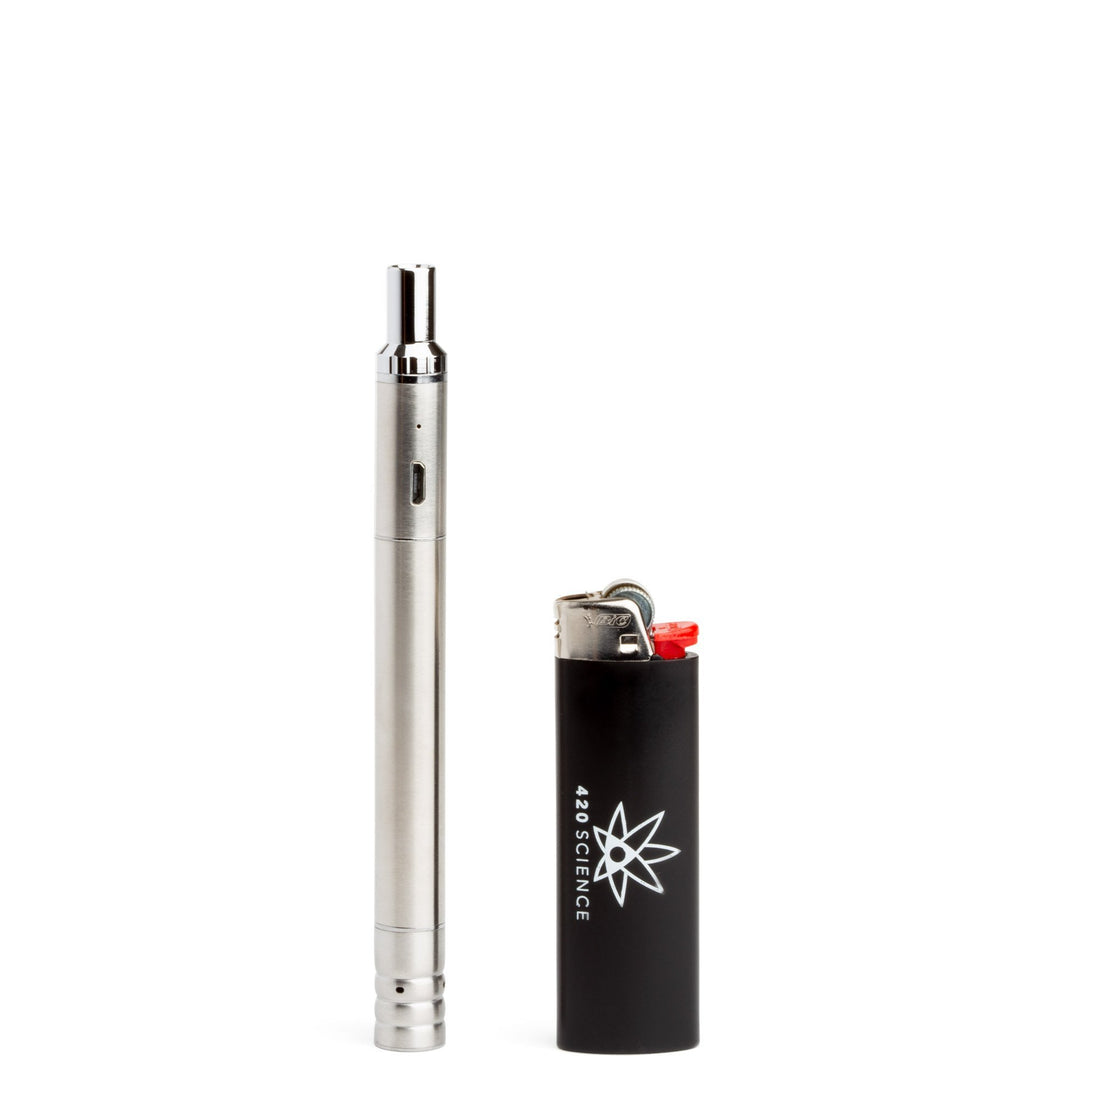 Boundless Terp Pen Honey Straw Vaporizer - 420 Science - The most trusted online smoke shop.